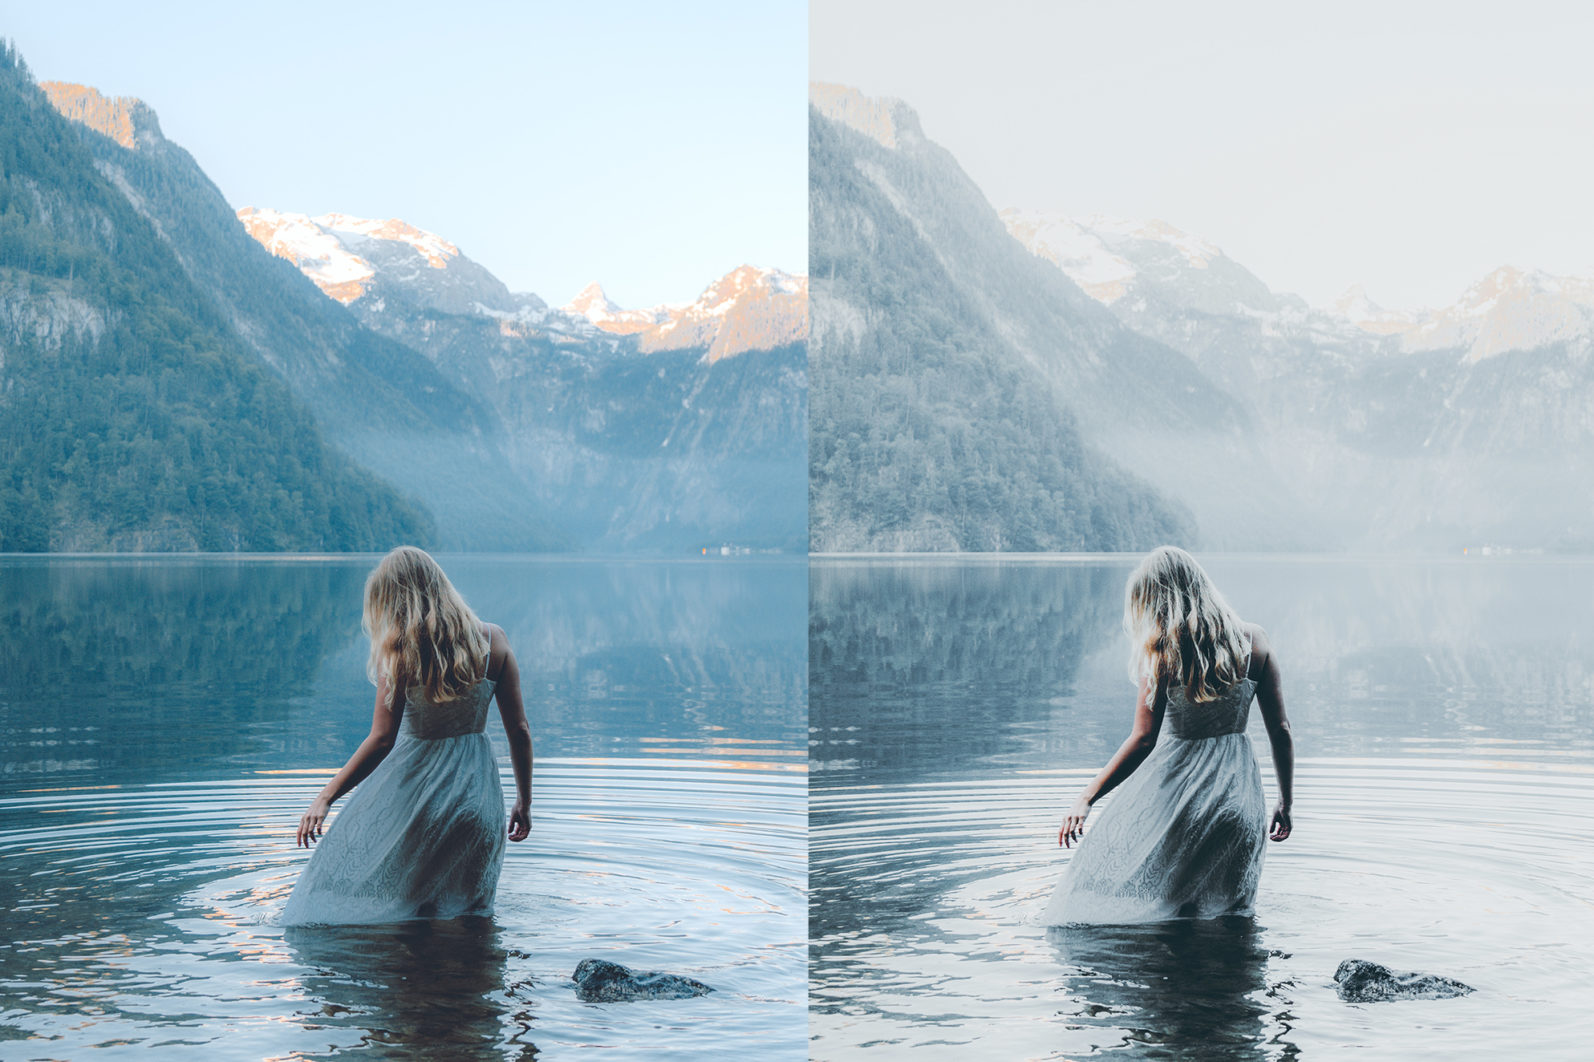 50 x TRAVEL BLOGGER PRESETS // Collect Memories // THE ONLY PRESETS YOU WILL EVER NEED - Preview 22 -